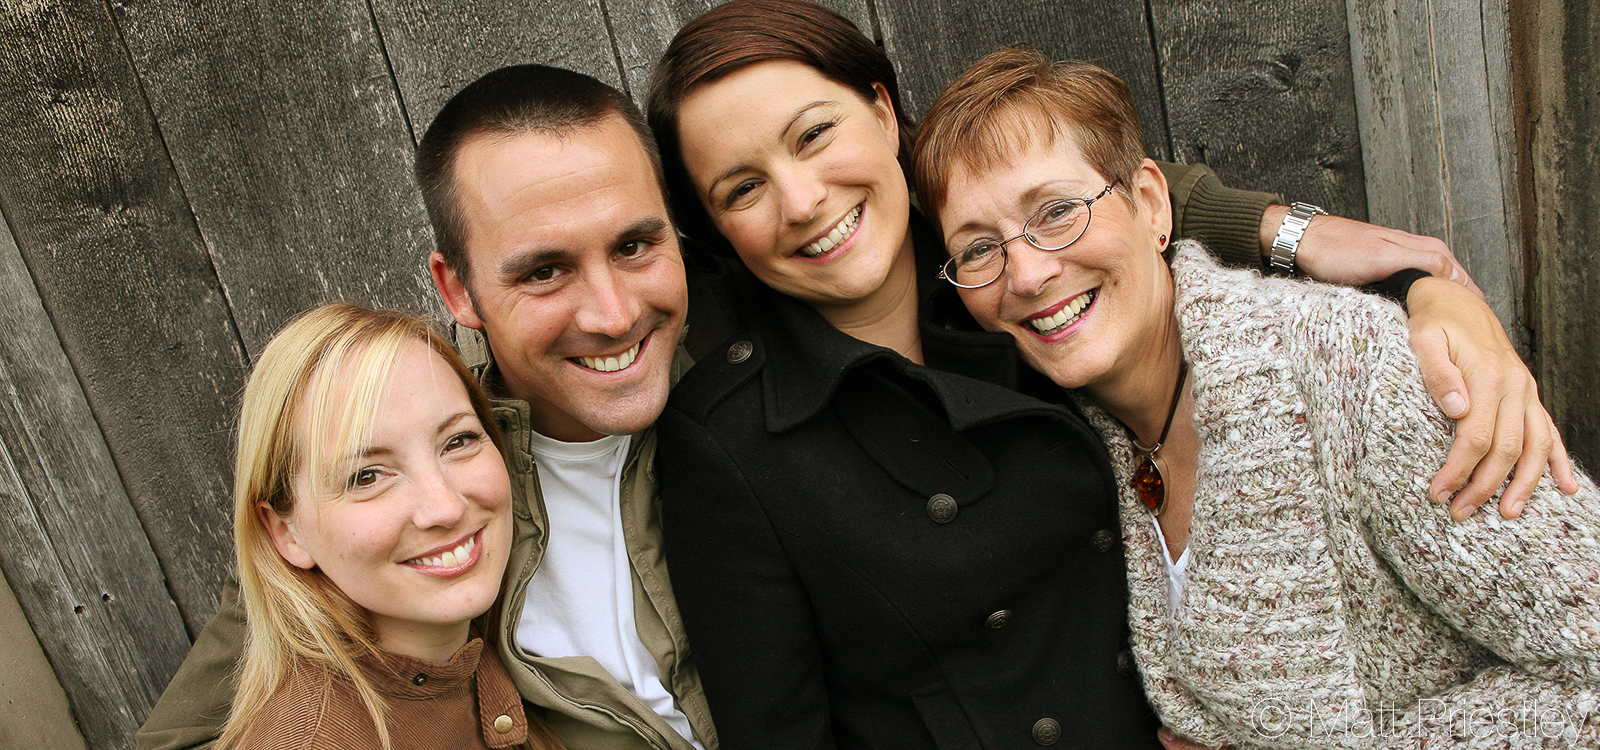 Family-portrait-photography-nr-Altrincham-by-local-photographer-Matt-Priiestley-2